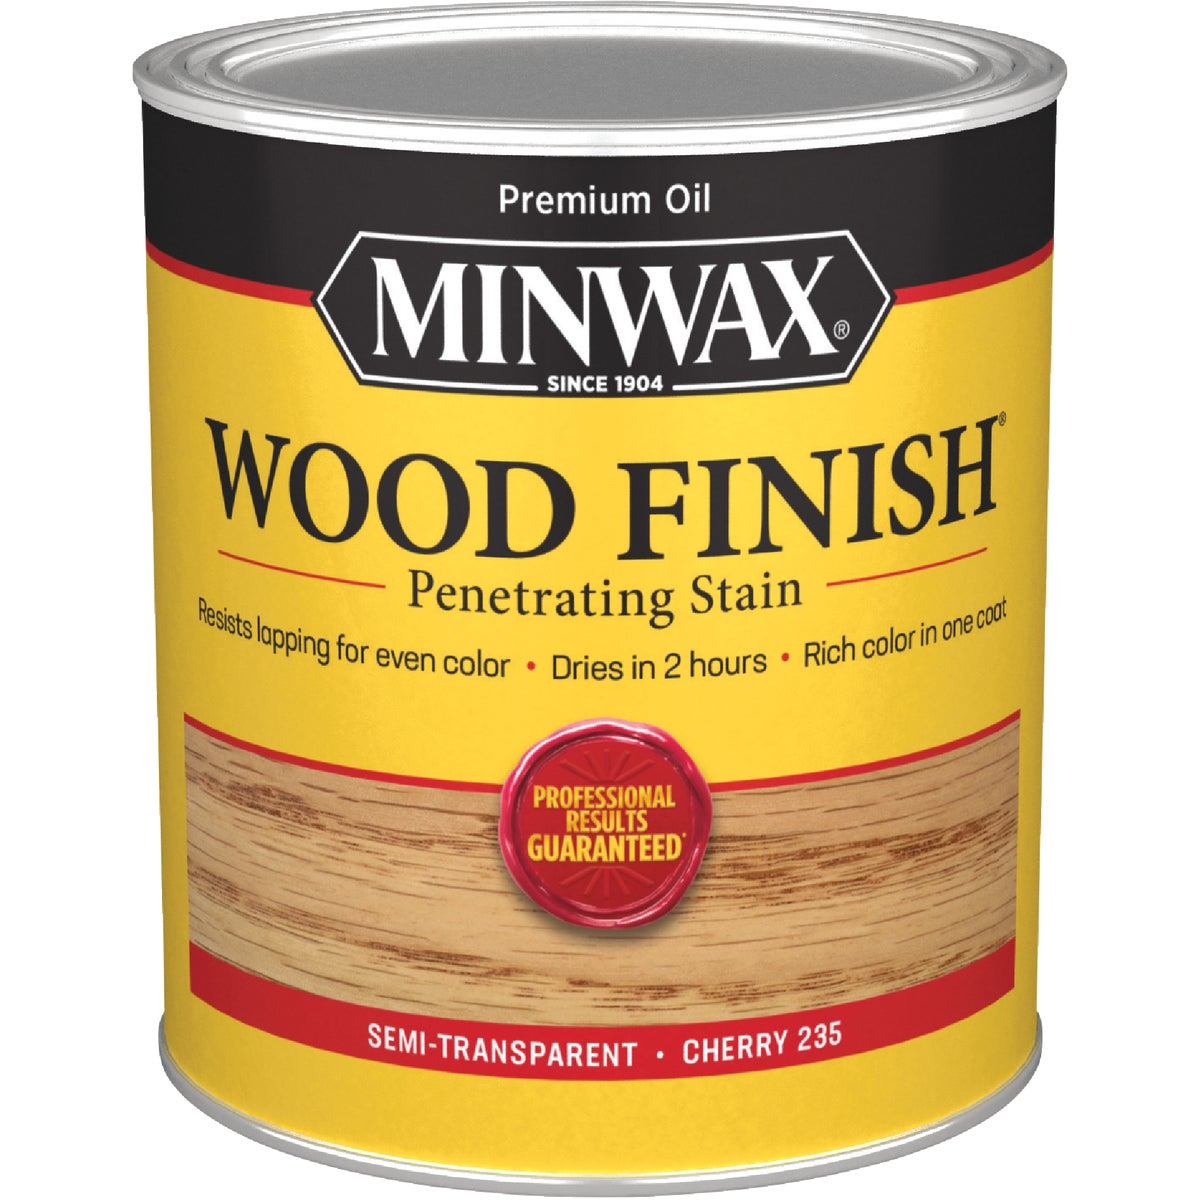 CHERRY WOOD STAIN - 70009 by Minwax Company